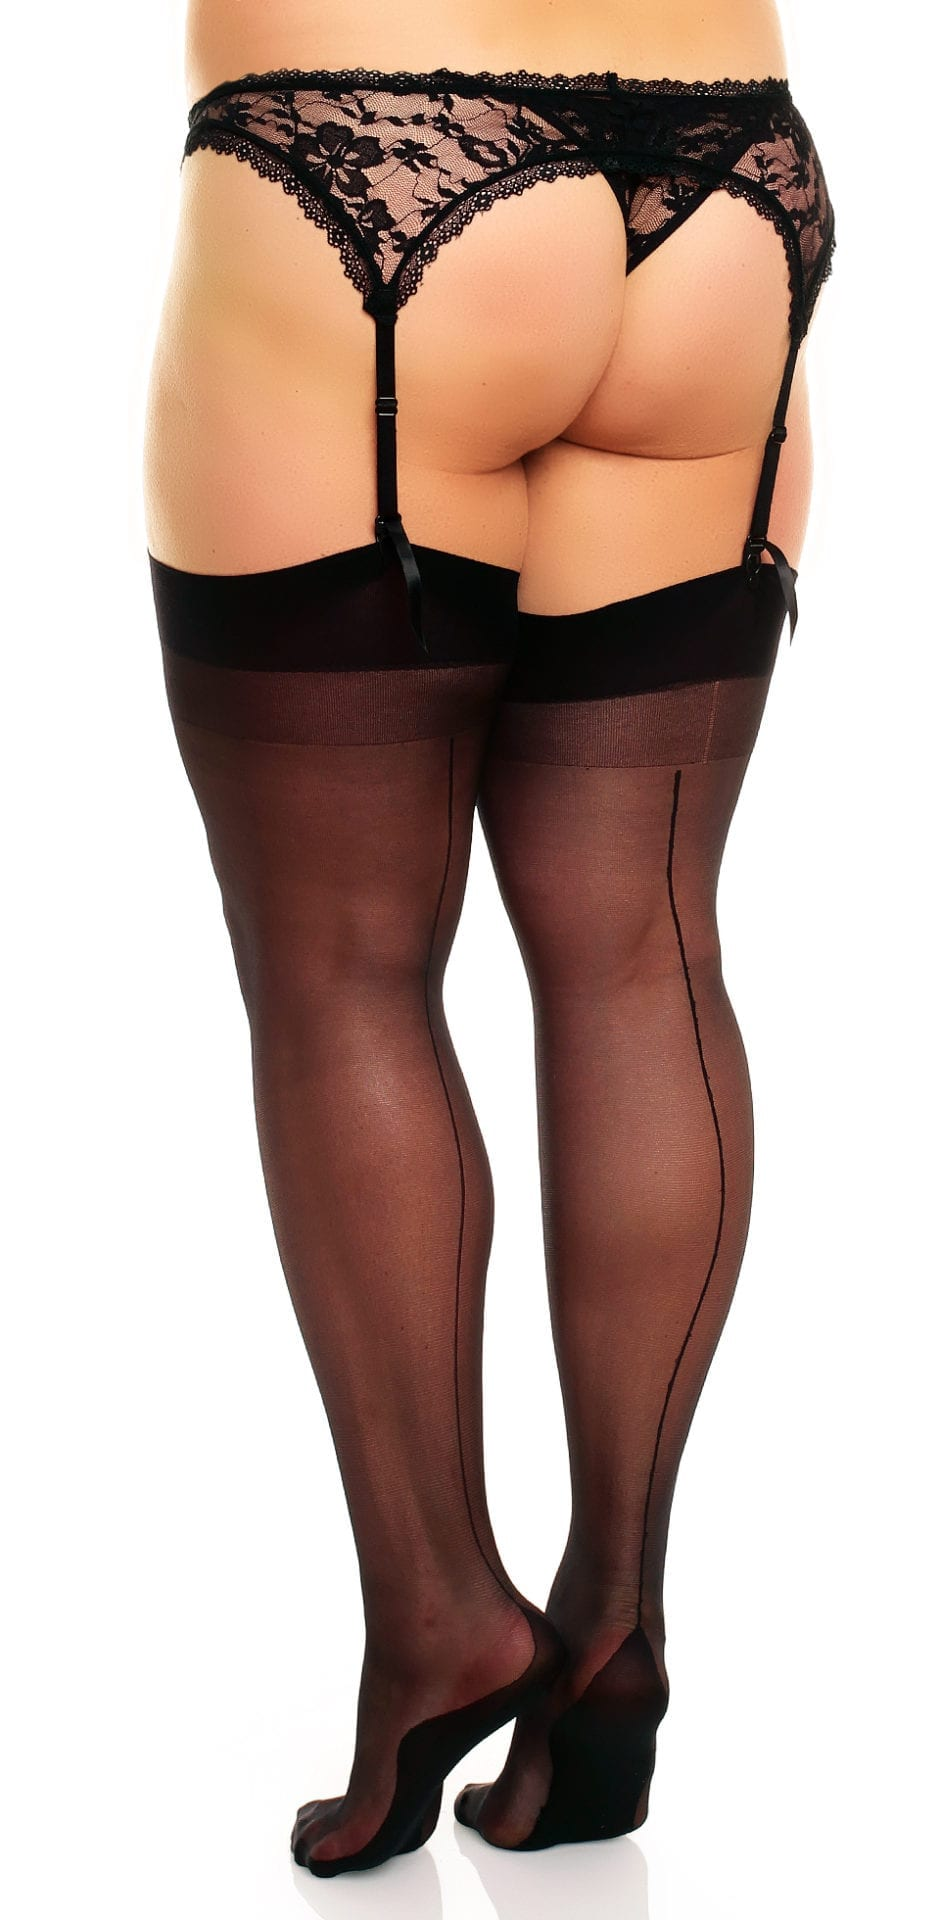 Plus size model wearing Glamory delight 20 seamed stockings in color black back view close up